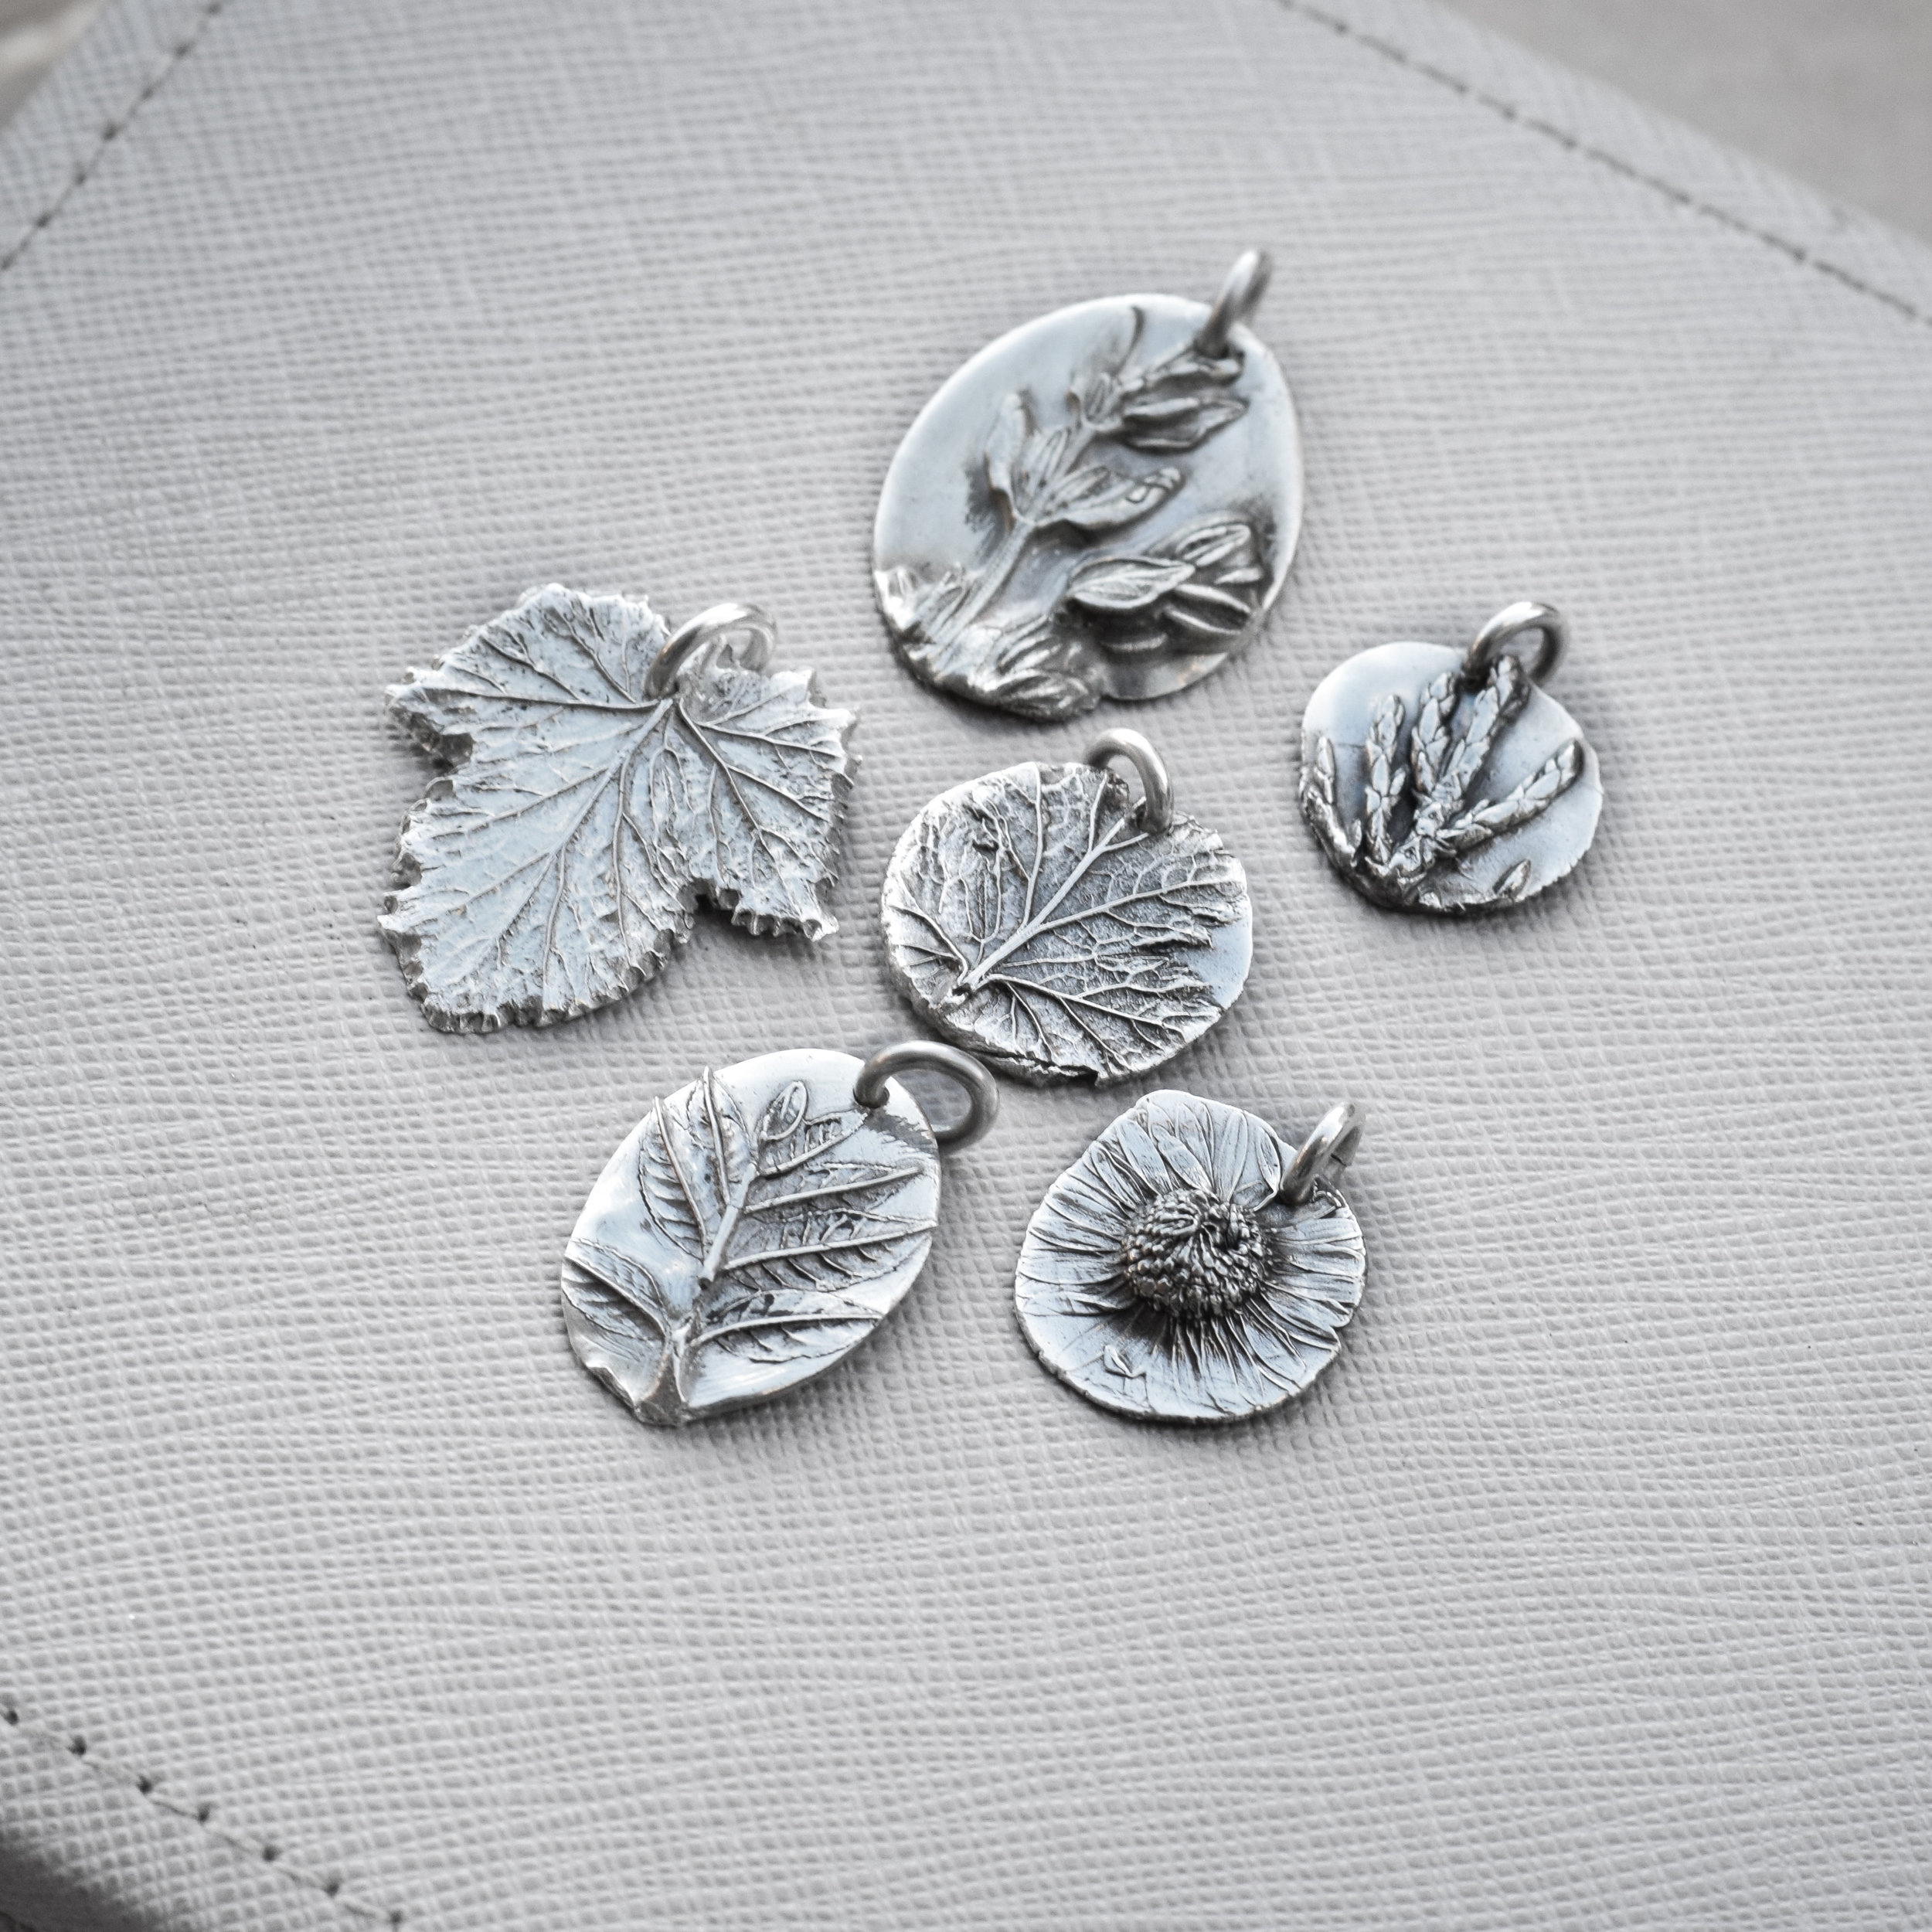 Metal clay botanical charms workshop - £95 -